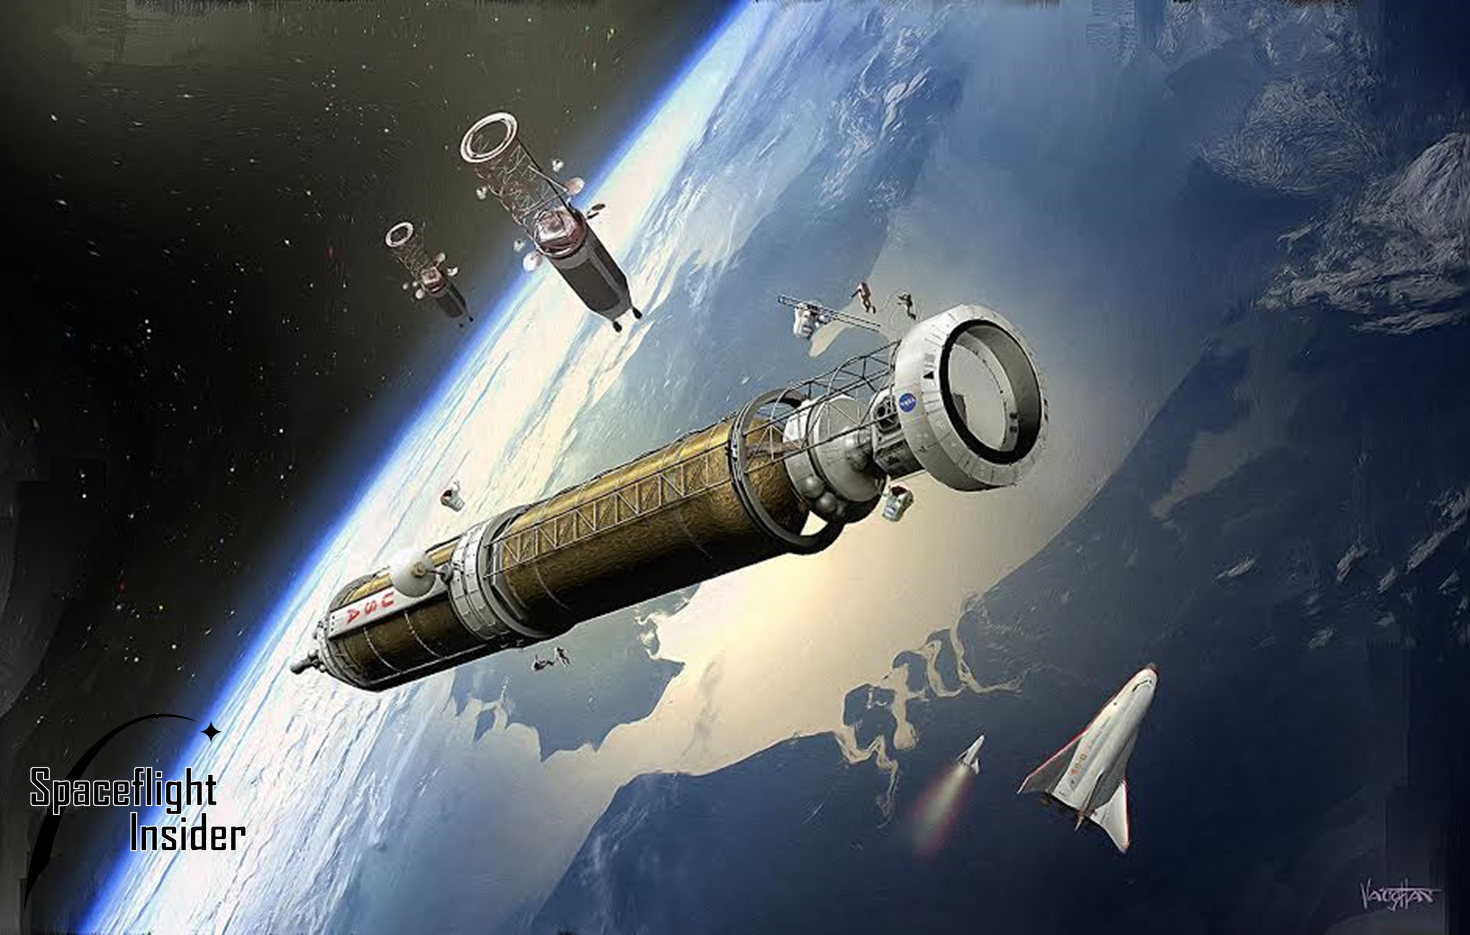 Other organizations, such as NASA and Boeing, are proposing  on-orbit assembly of a Mars craft using multiple super-heavy lift launch vehicles. However, SpaceX's system will require Earth-orbit rendezvous for the refueling of the second stage spaceship. Image Credit: James Vaughan / SpaceFlight Insider